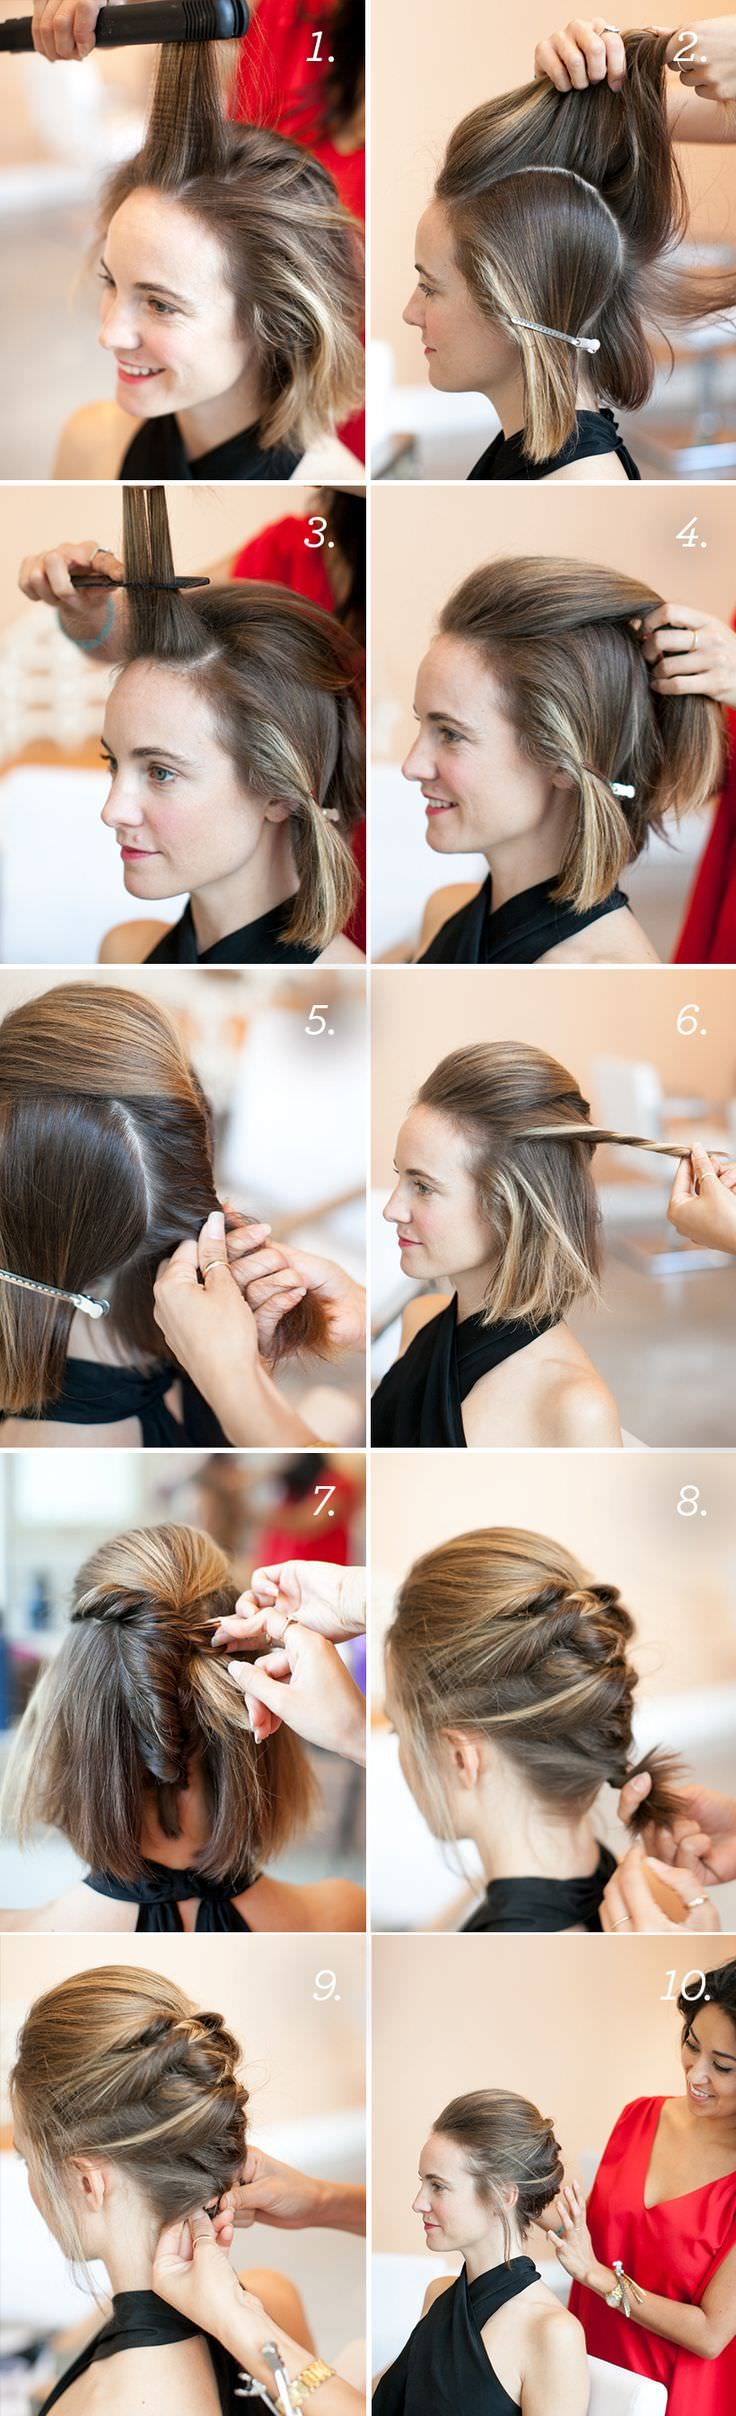 Pin by angie bellamy on hair pinterest morning hair nice